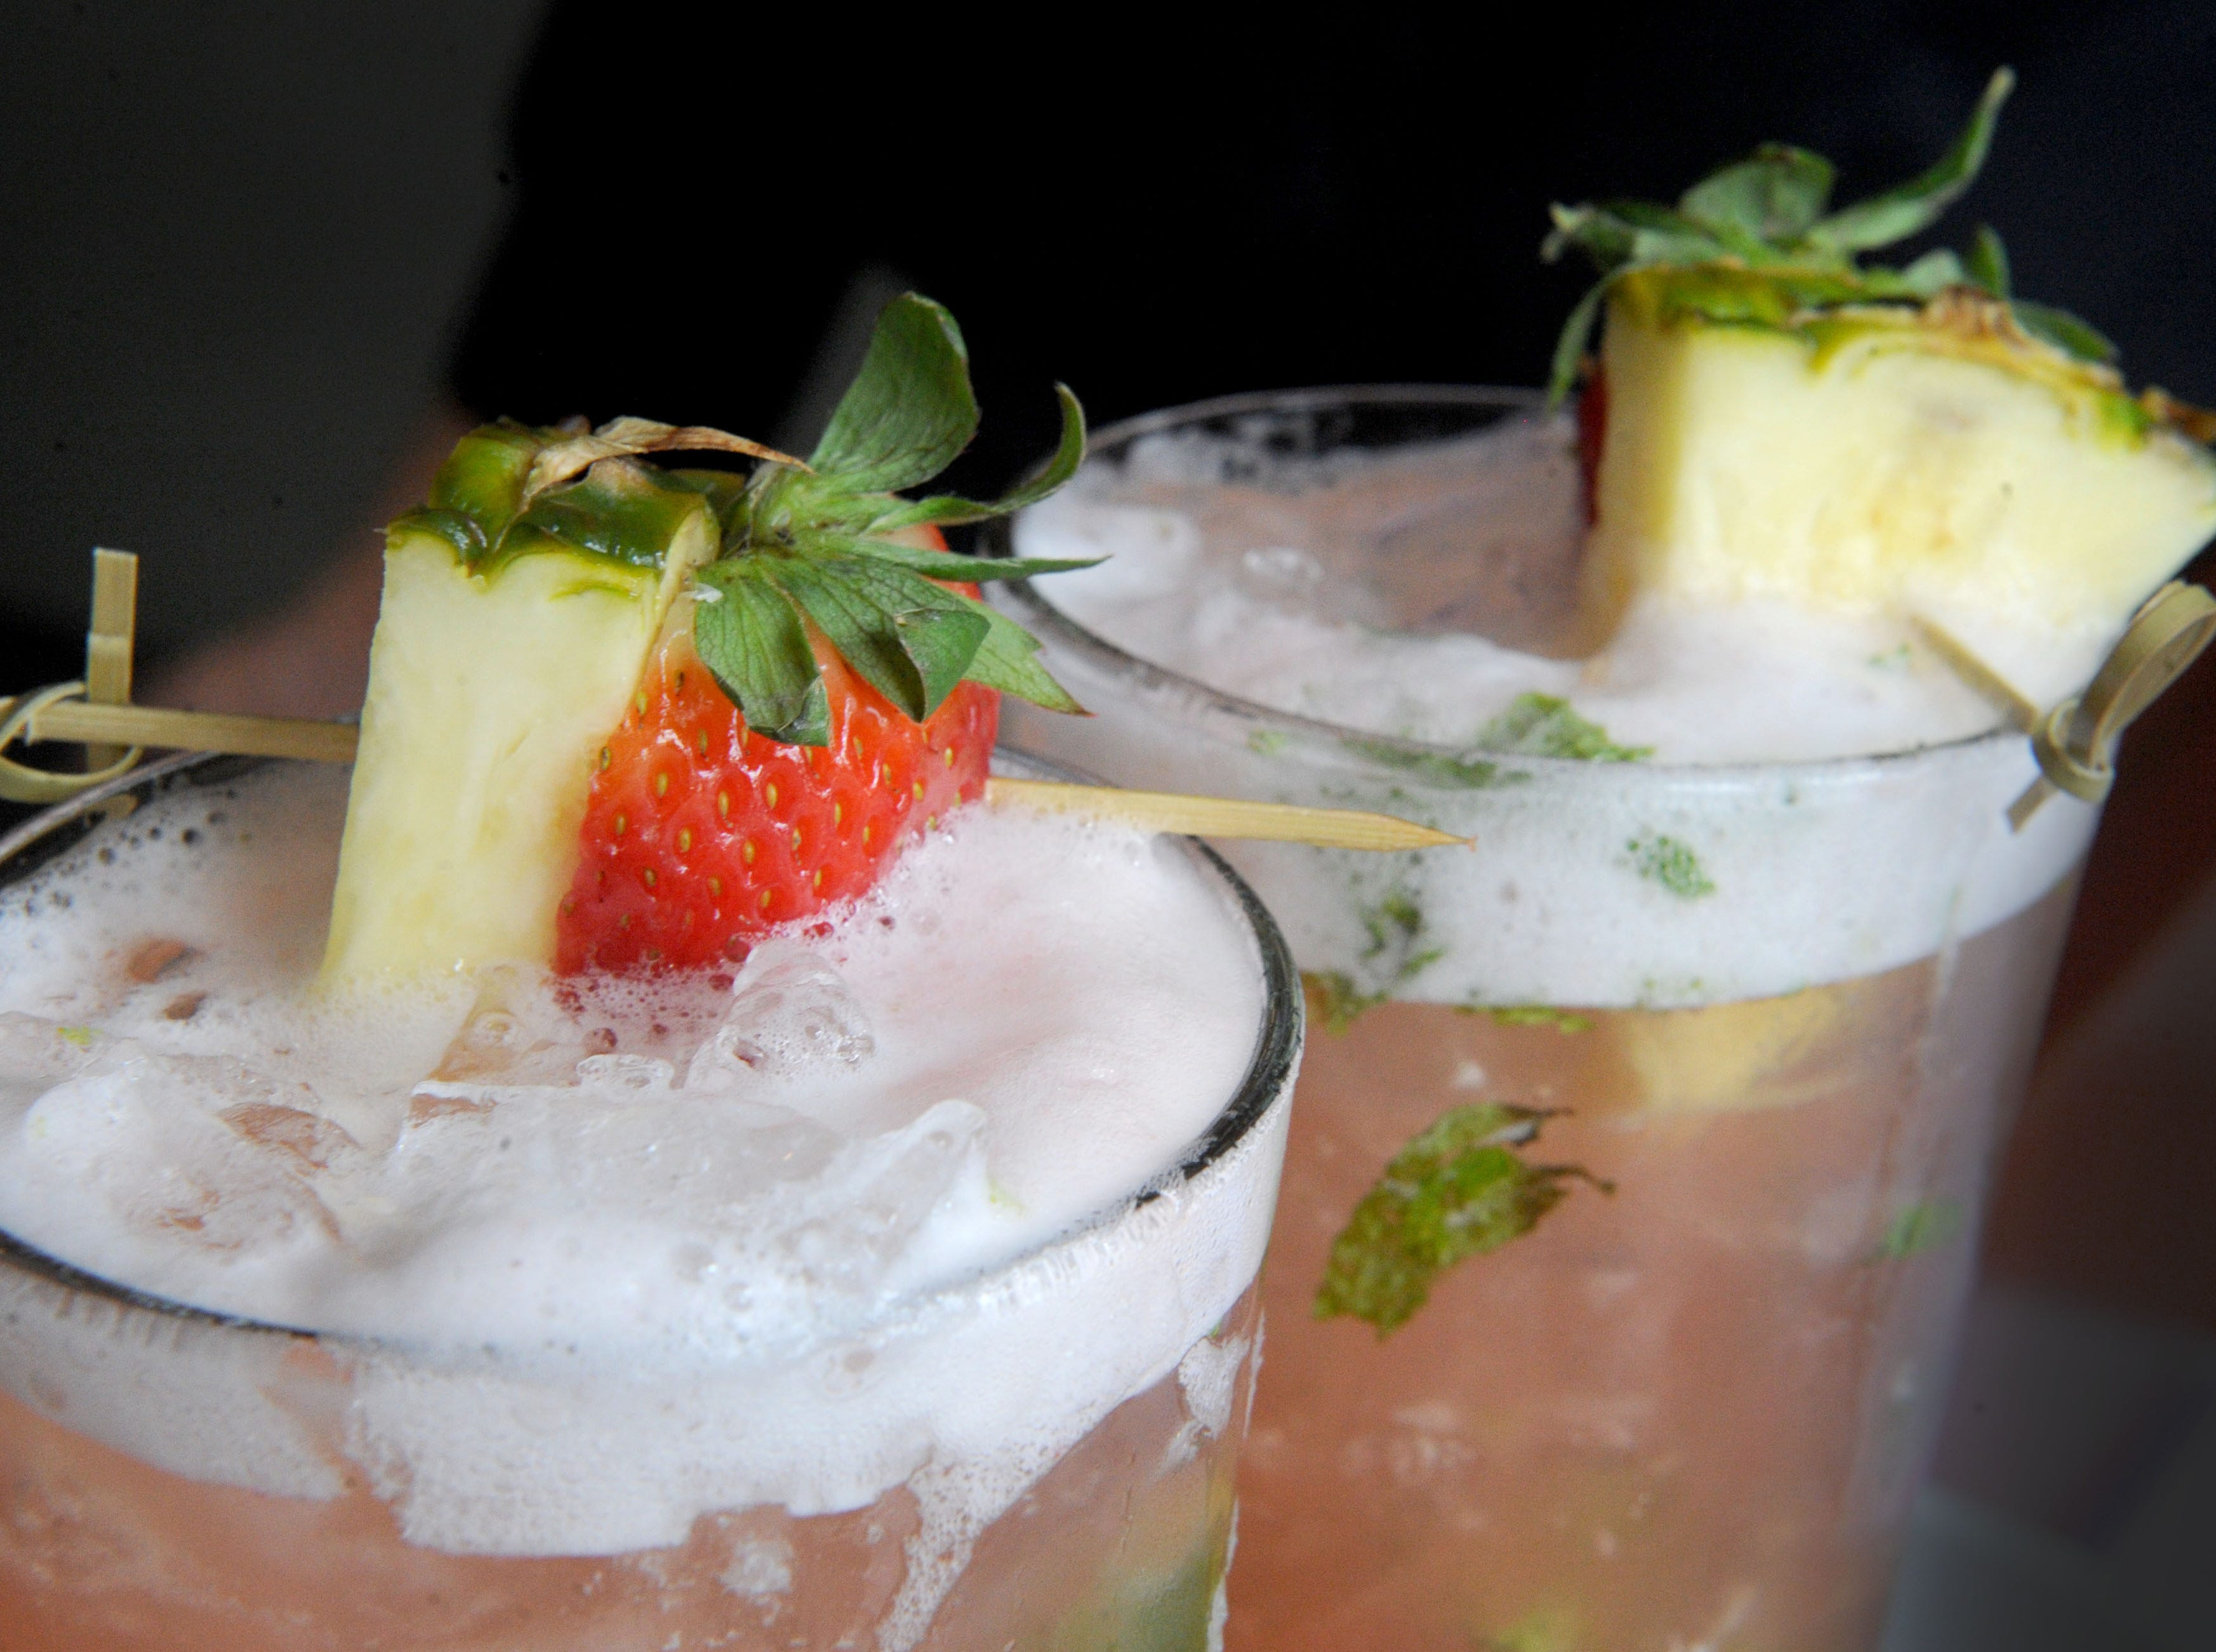 Agua fresca, the day's special non-alcoholic beverage at Slate Bistro & Craft Bar in Camarillo features a blend of rhubarb and pineapple.